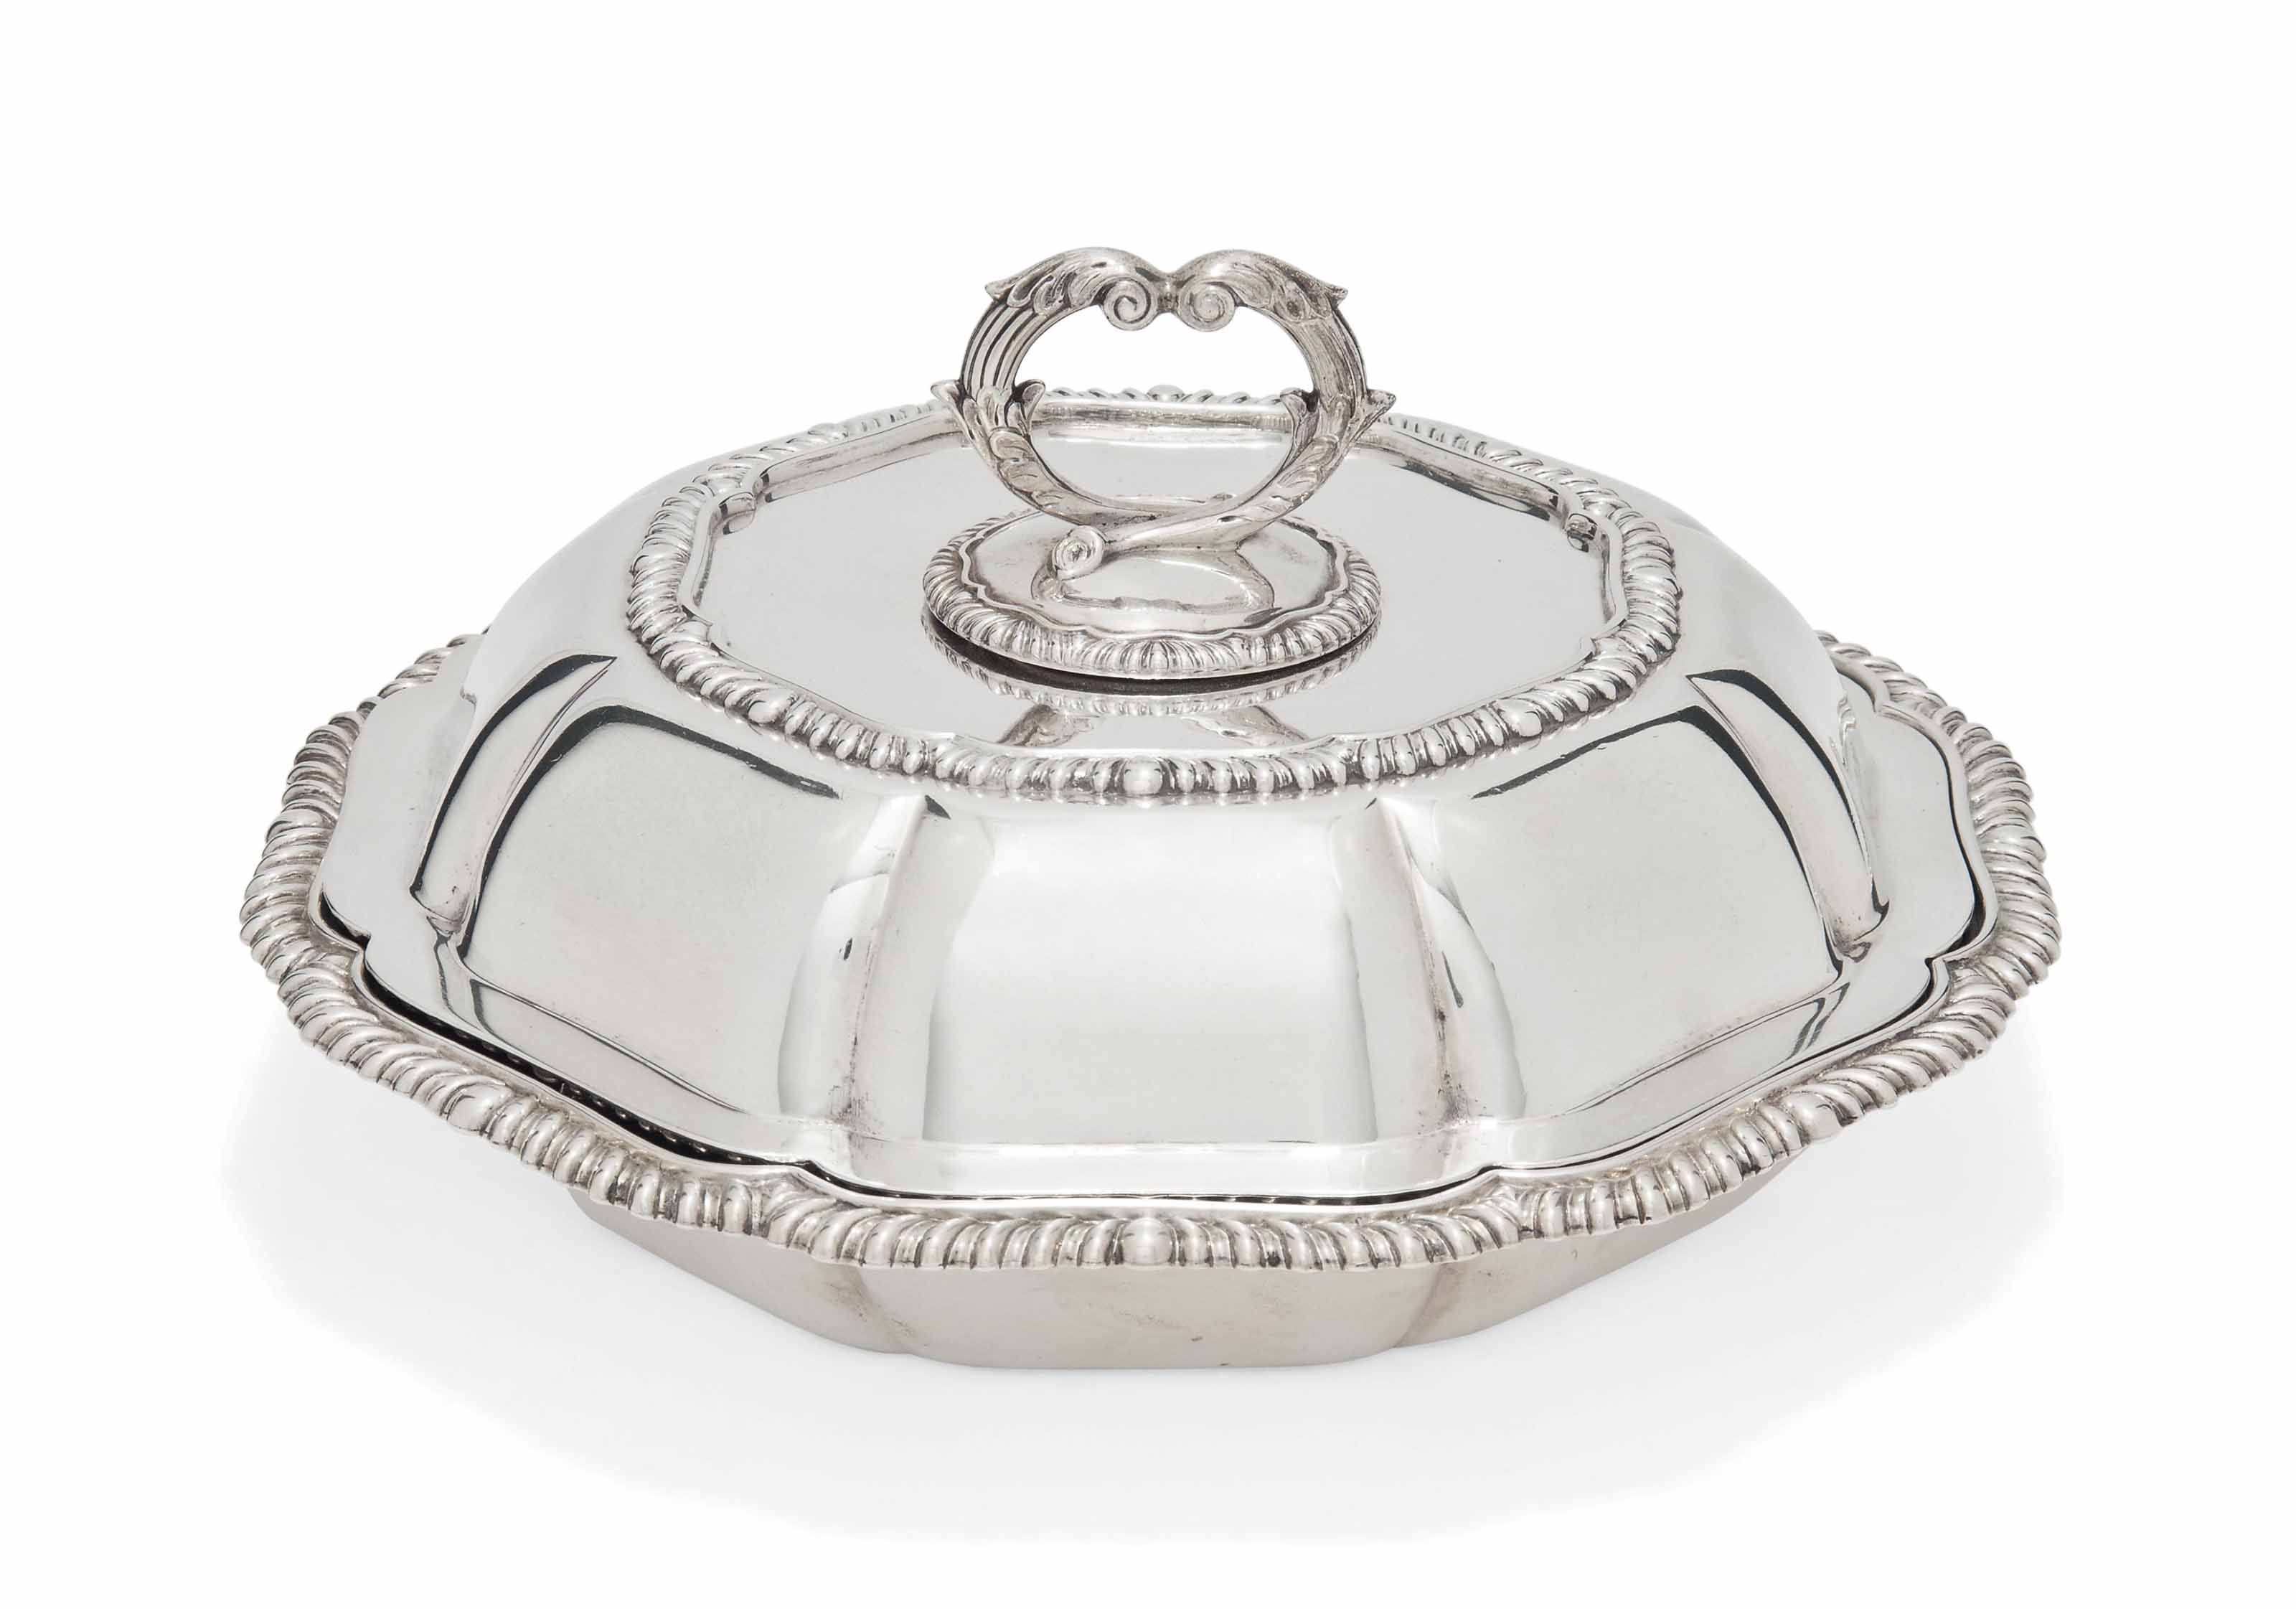 A LATE VICTORIAN SHAPED CIRCULAR SILVER VEGETABLE DISH